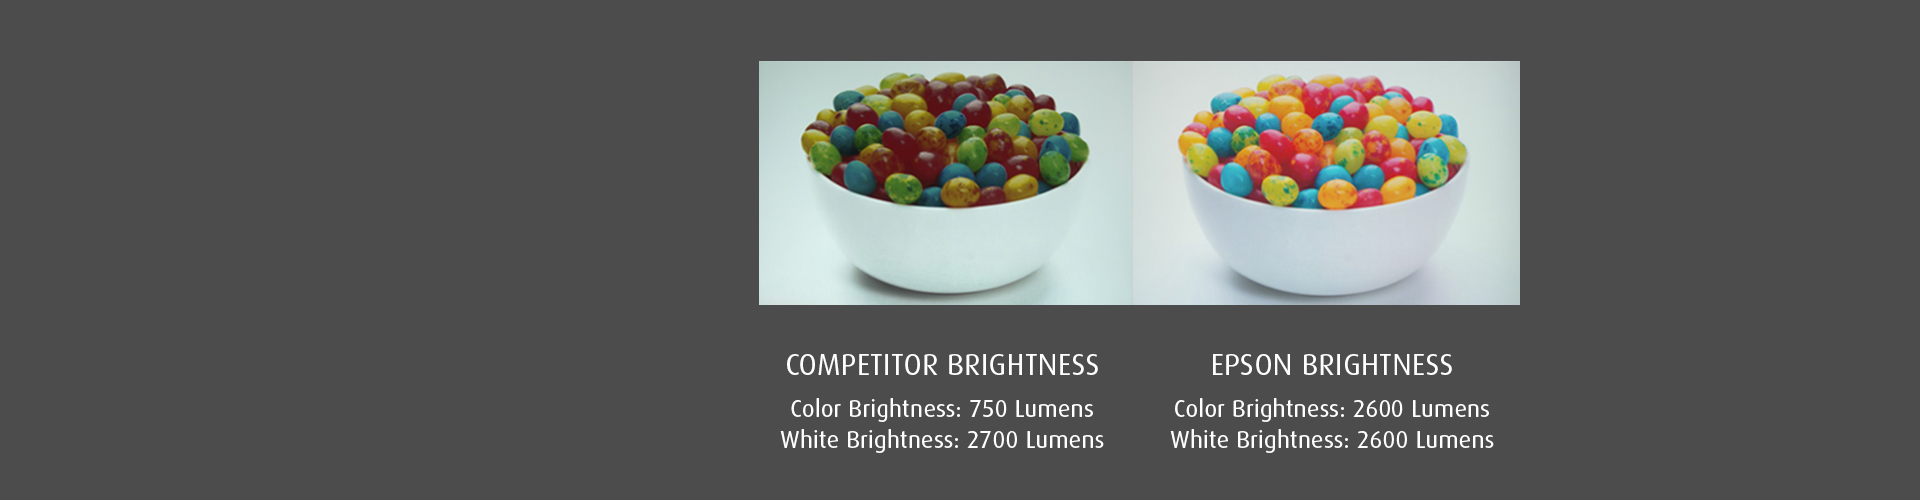 Color Brightness and White Brightness (Lumens)